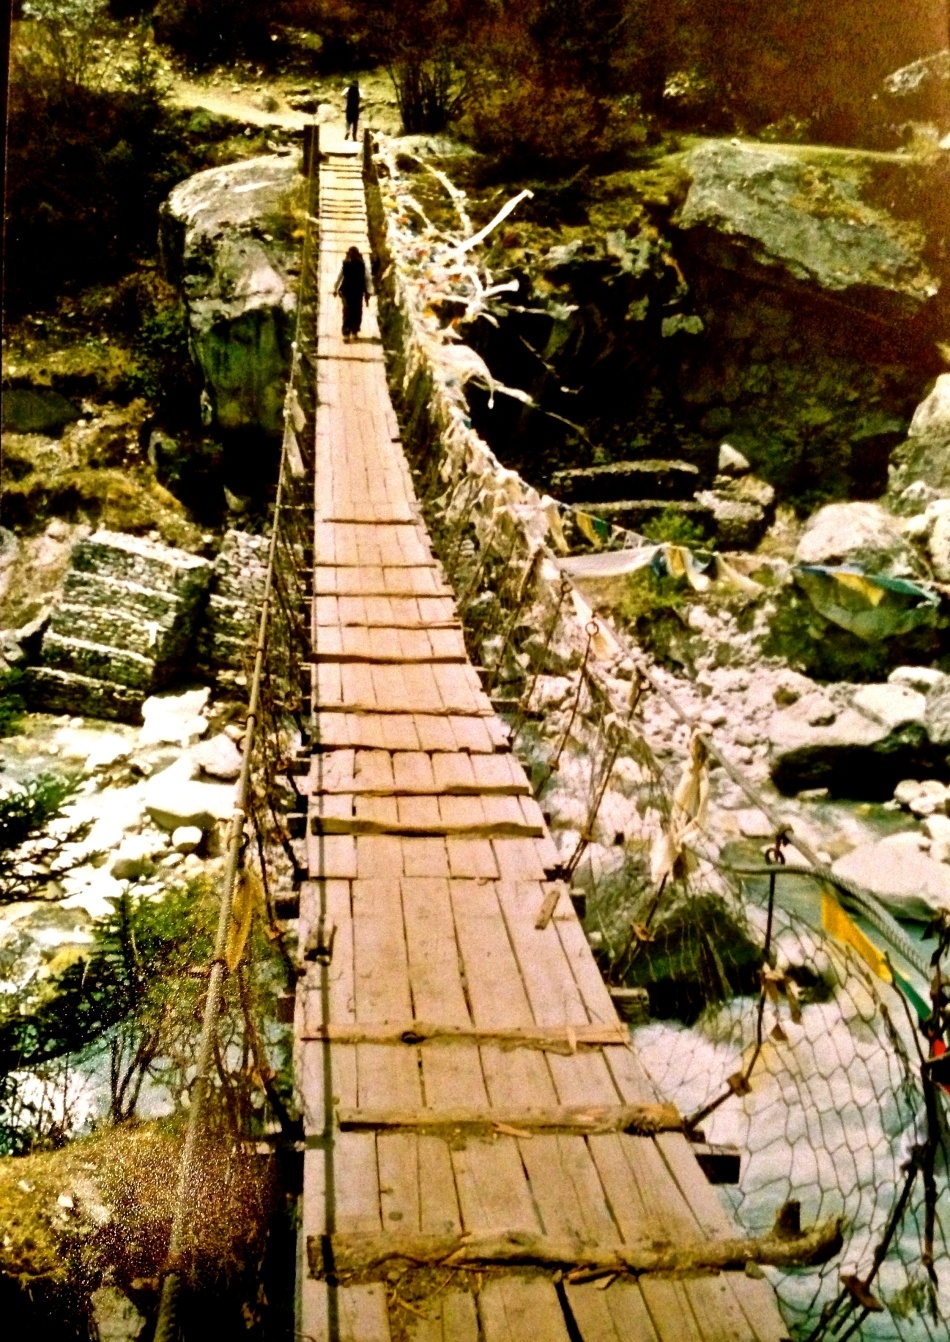 Nepal - Sagarmatha National Park - Bridge